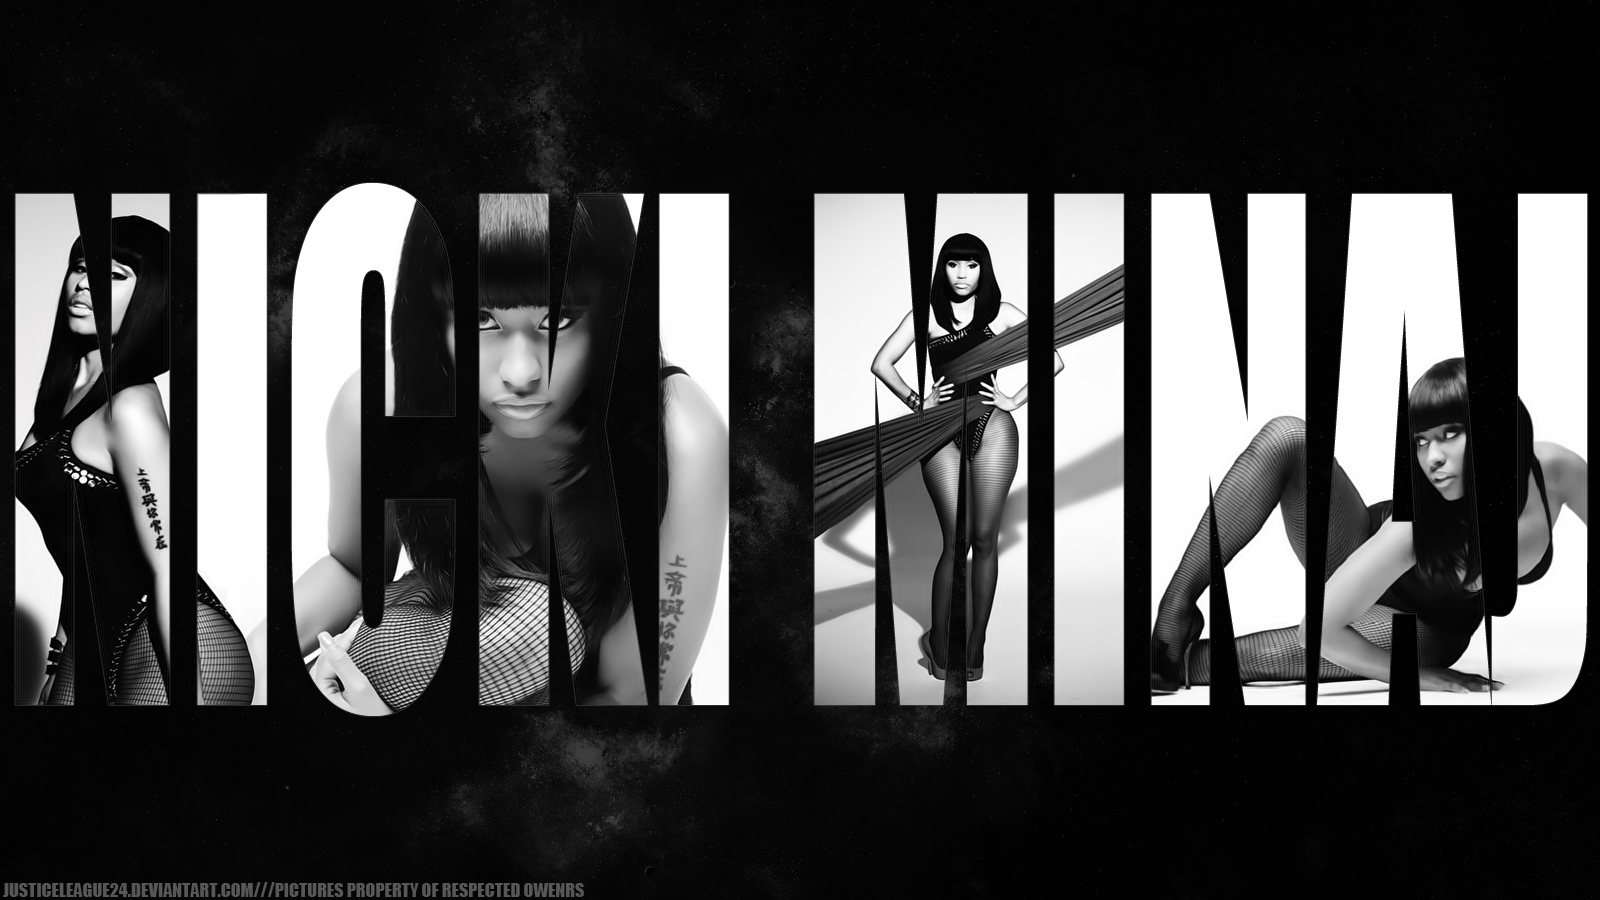 Download Nicki Minaj HD 20 background for your phone iPhone android 1600x900